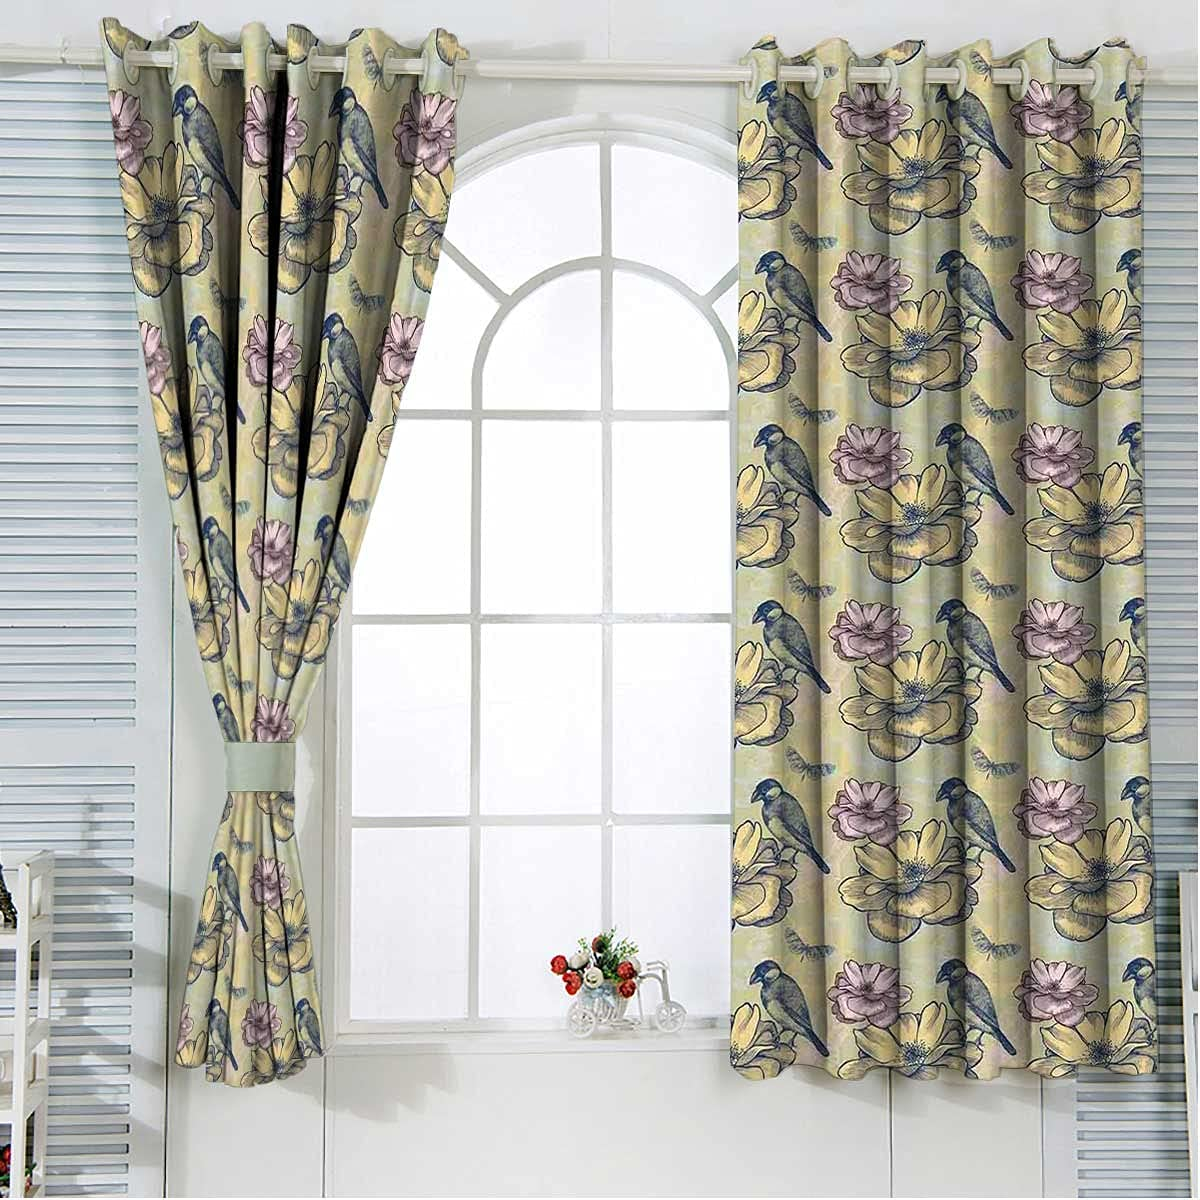 Spring Grommet Curtains 84 Inches Length Multicolor Cur Factory outlet Ranking TOP17 Kitchen